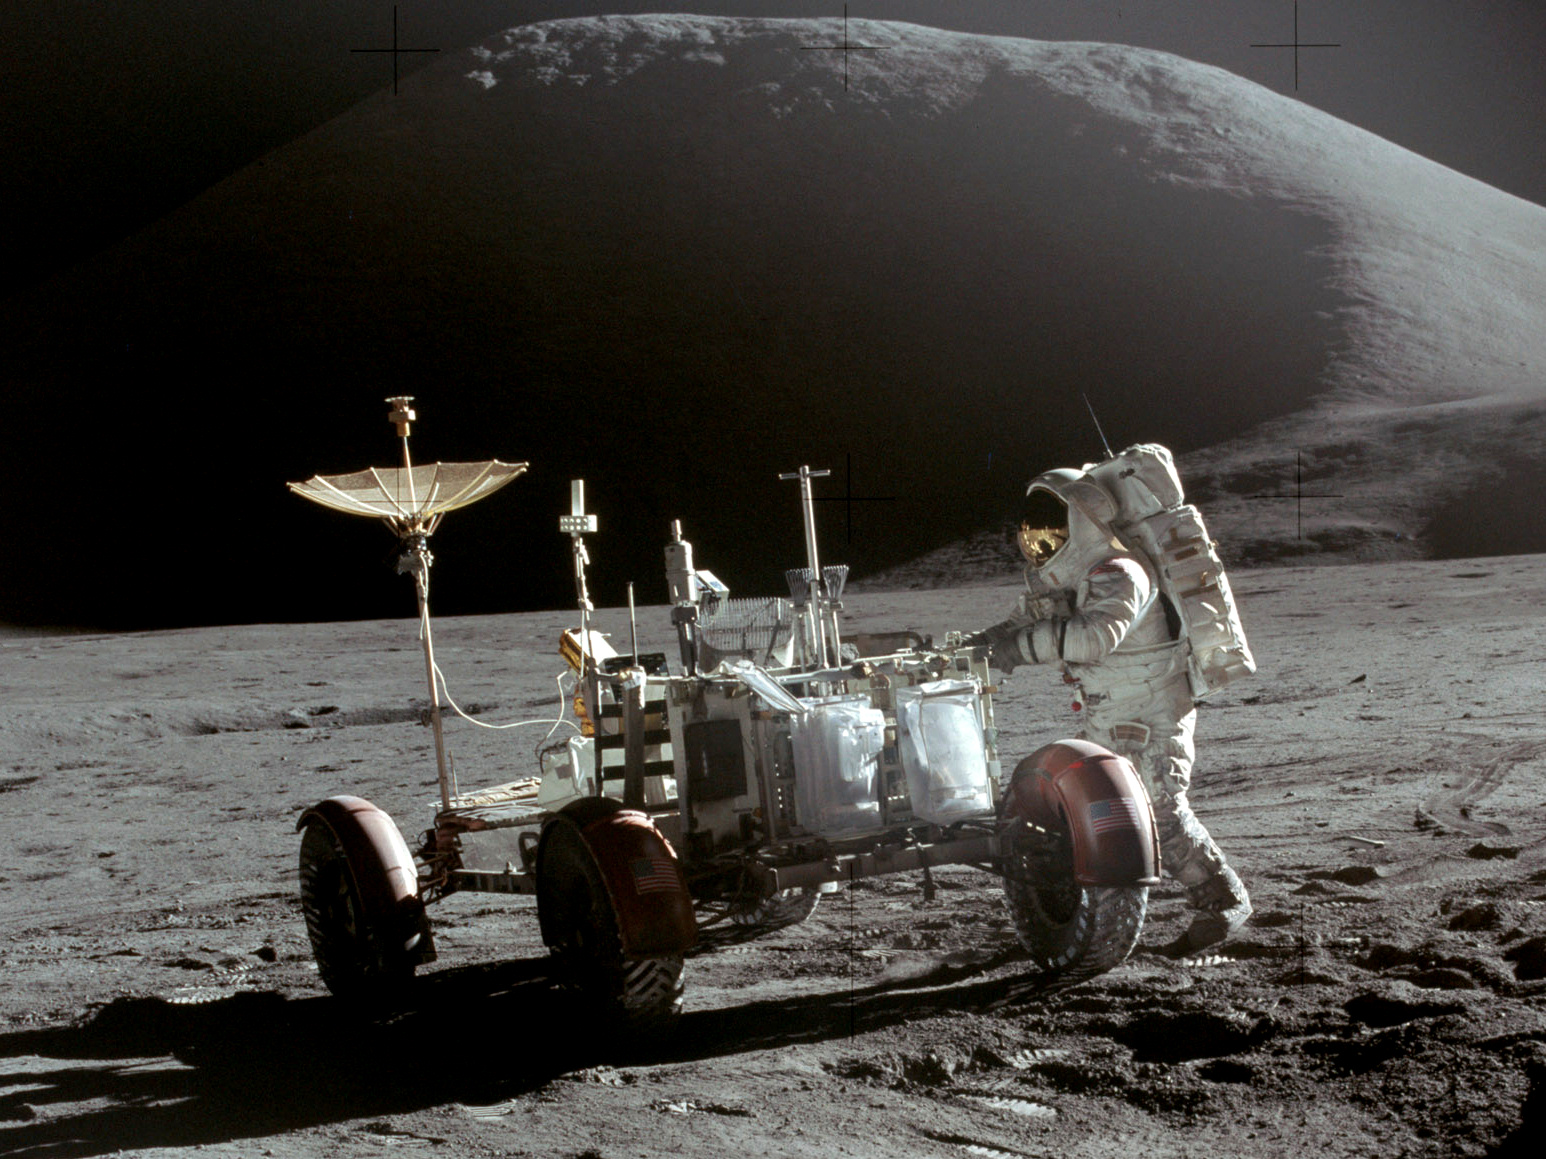 http://upload.wikimedia.org/wikipedia/commons/2/2e/Apollo_15_Lunar_Rover_and_Irwin.jpg